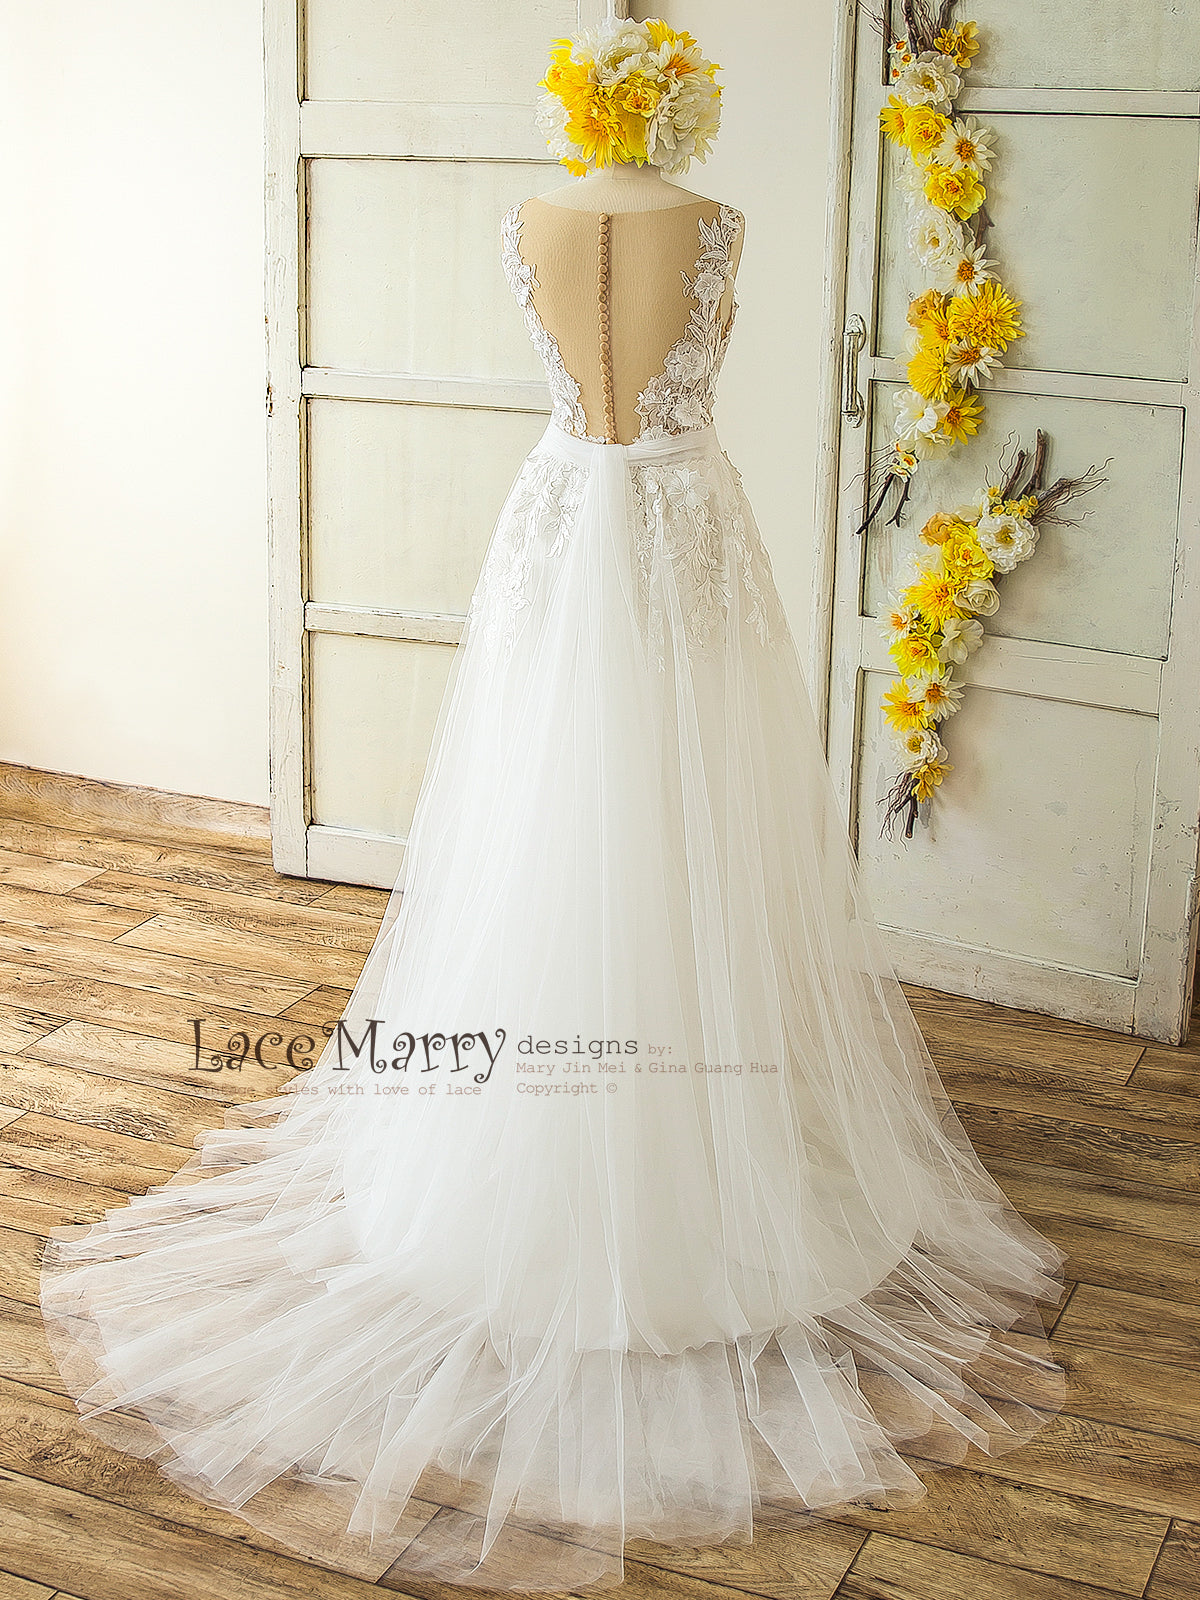 Boho Wedding Dress with Small Train